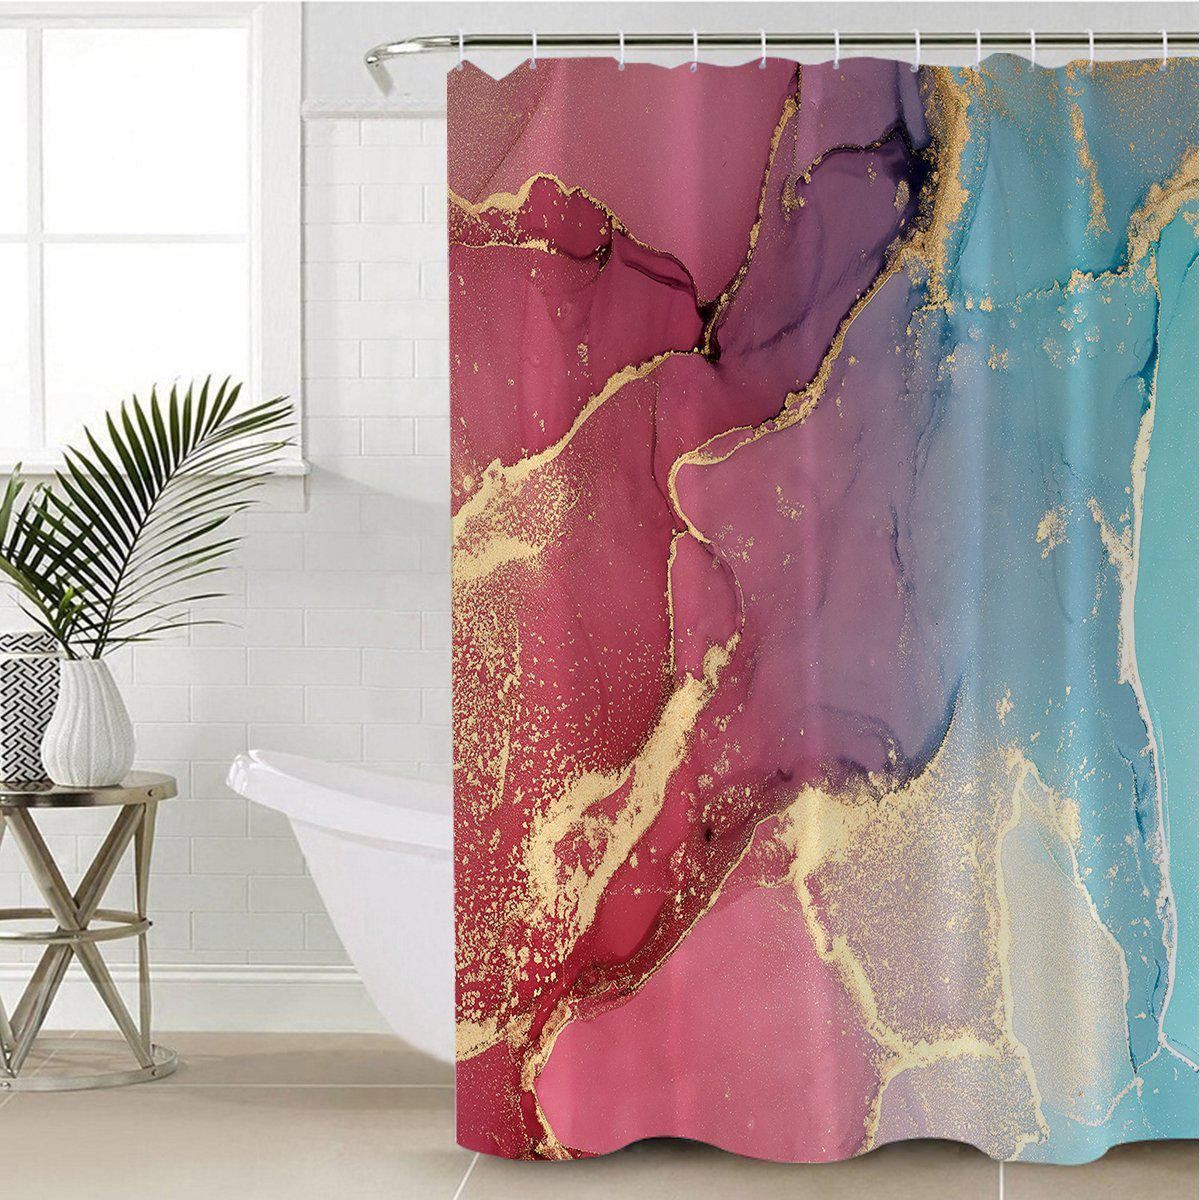 Budelli Beach Shower Curtain